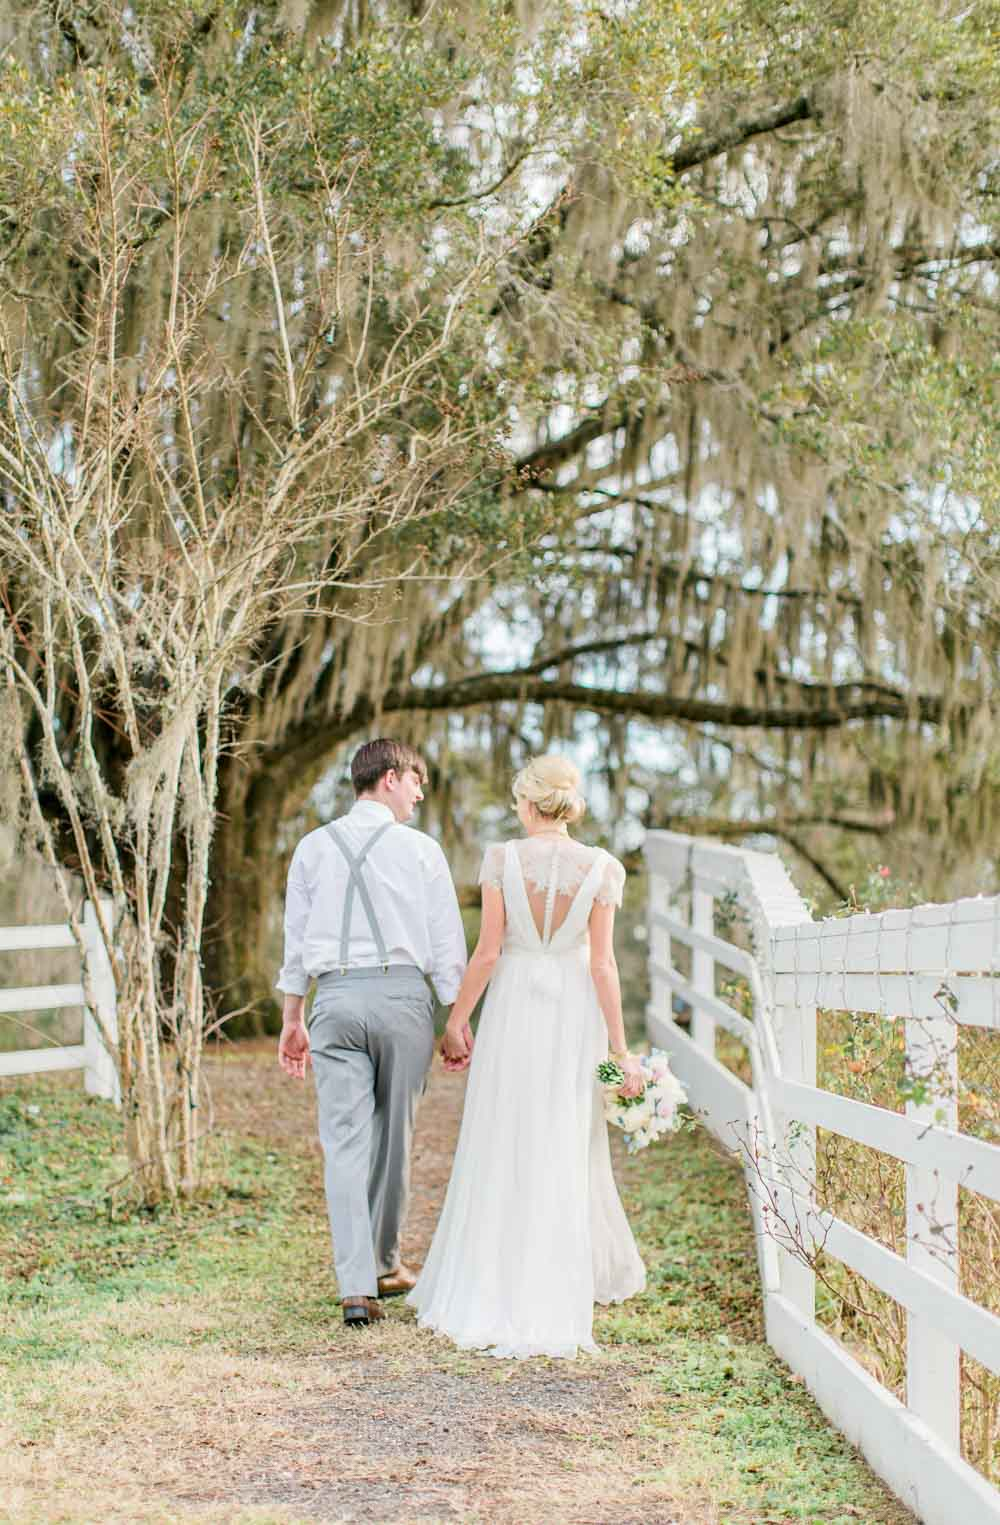 bride and groom walking down path in lace wedding dress holding bouquet